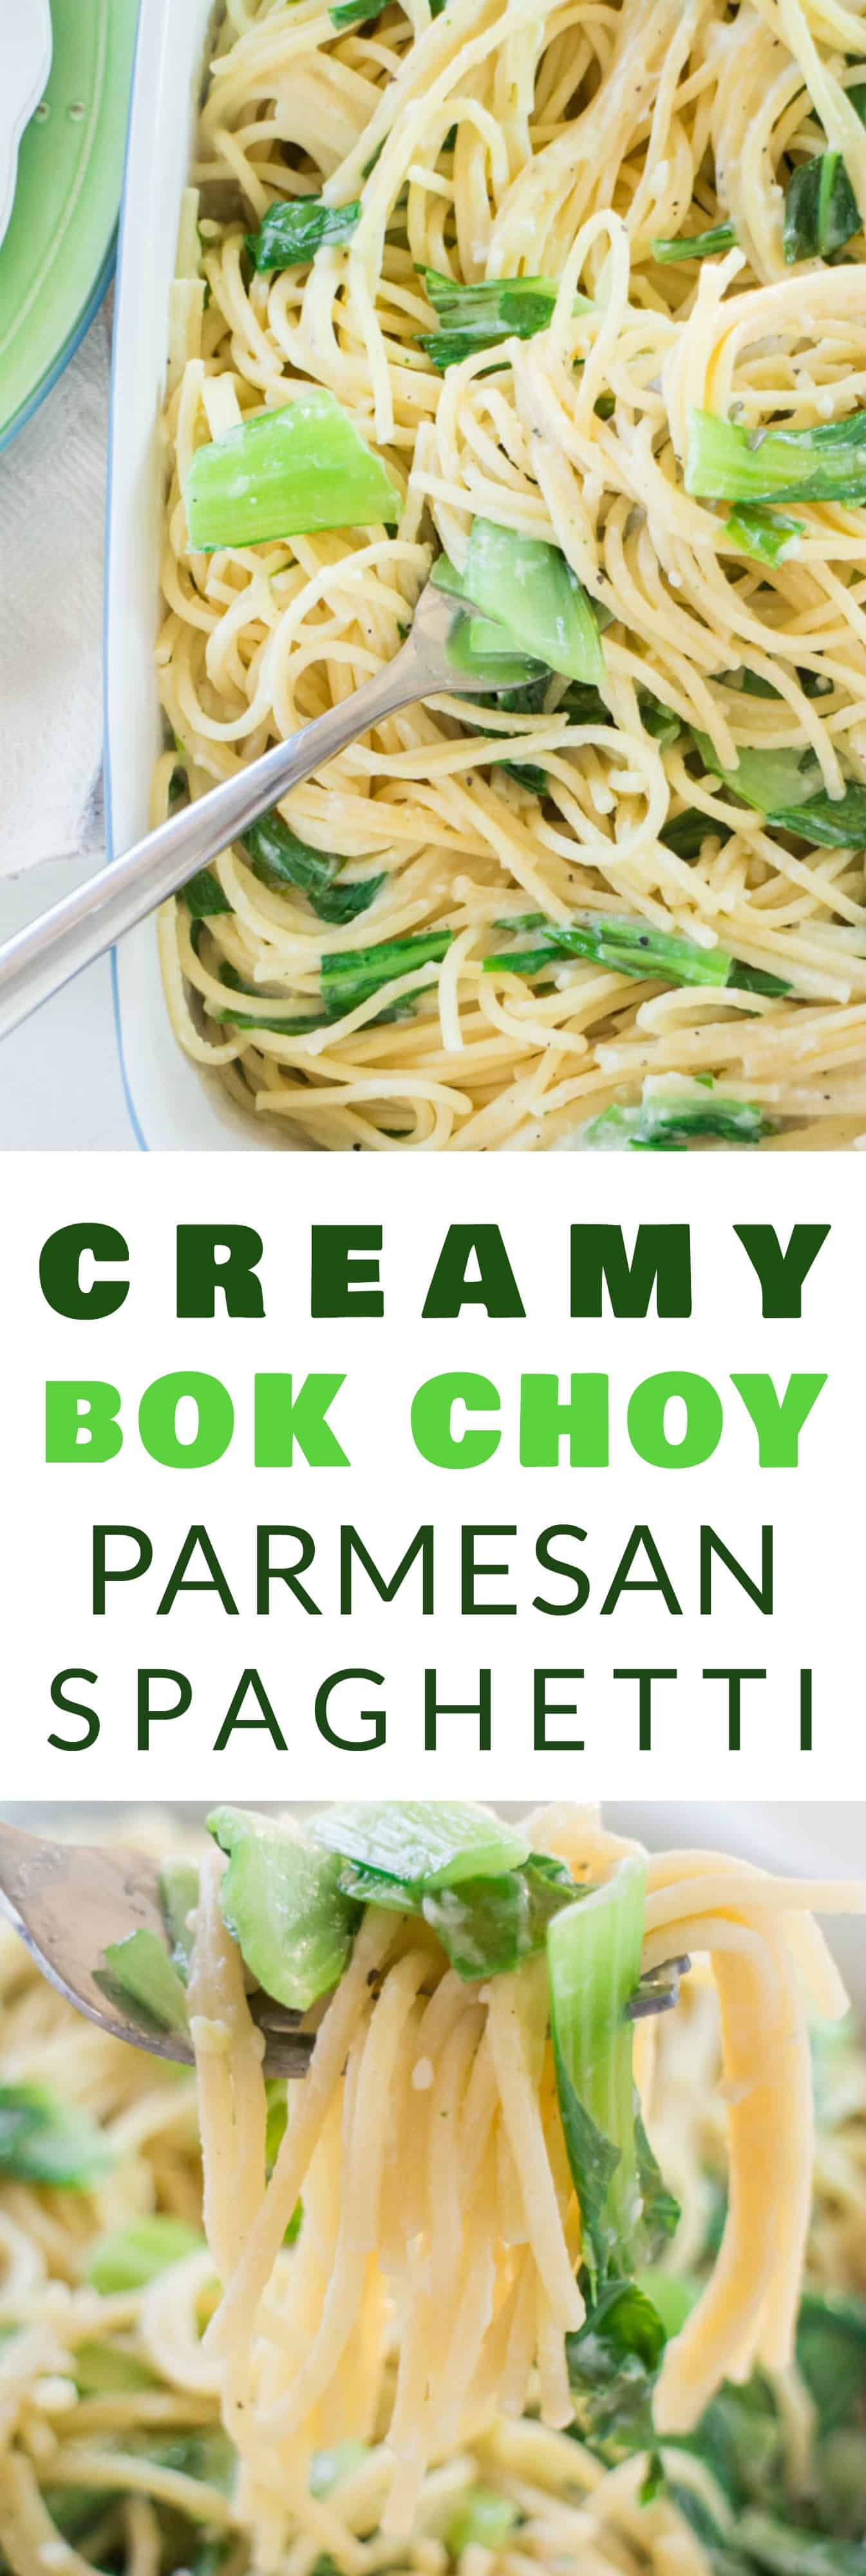 HEALTHY Creamy Bok Choy Spaghetti made with Parmesan Cheese! This is a great way to sneak in vegetables for a meal your family will love! This easy recipe only uses 1/2 cup Parmesan Cheese and takes under 15 minutes to make! Sometimes I like adding chicken to it for more protein!